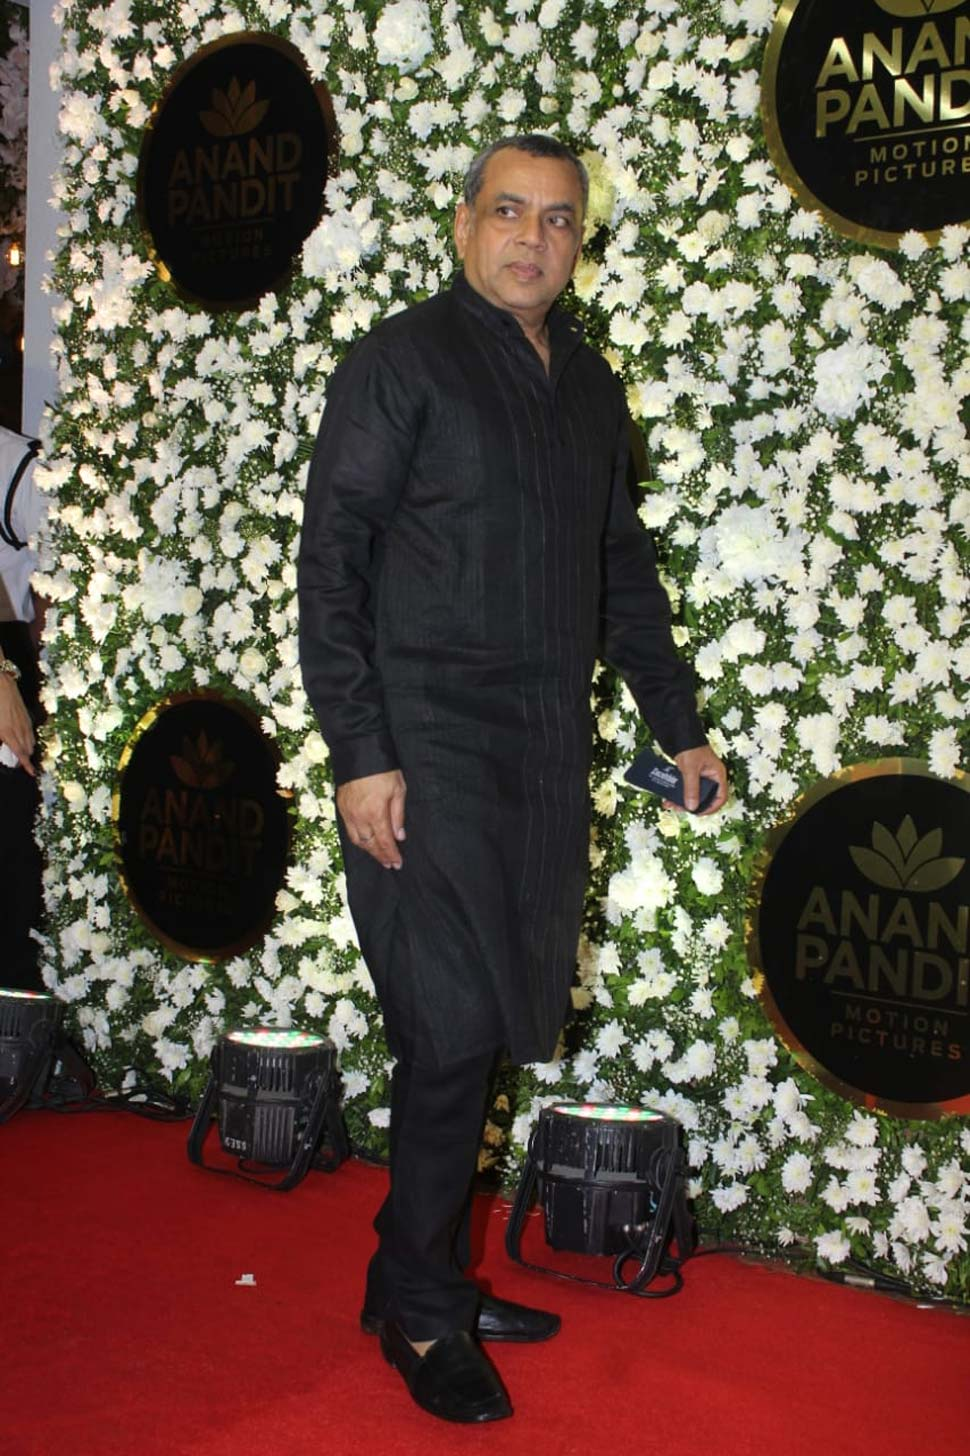 Anand Pandit Diwali party